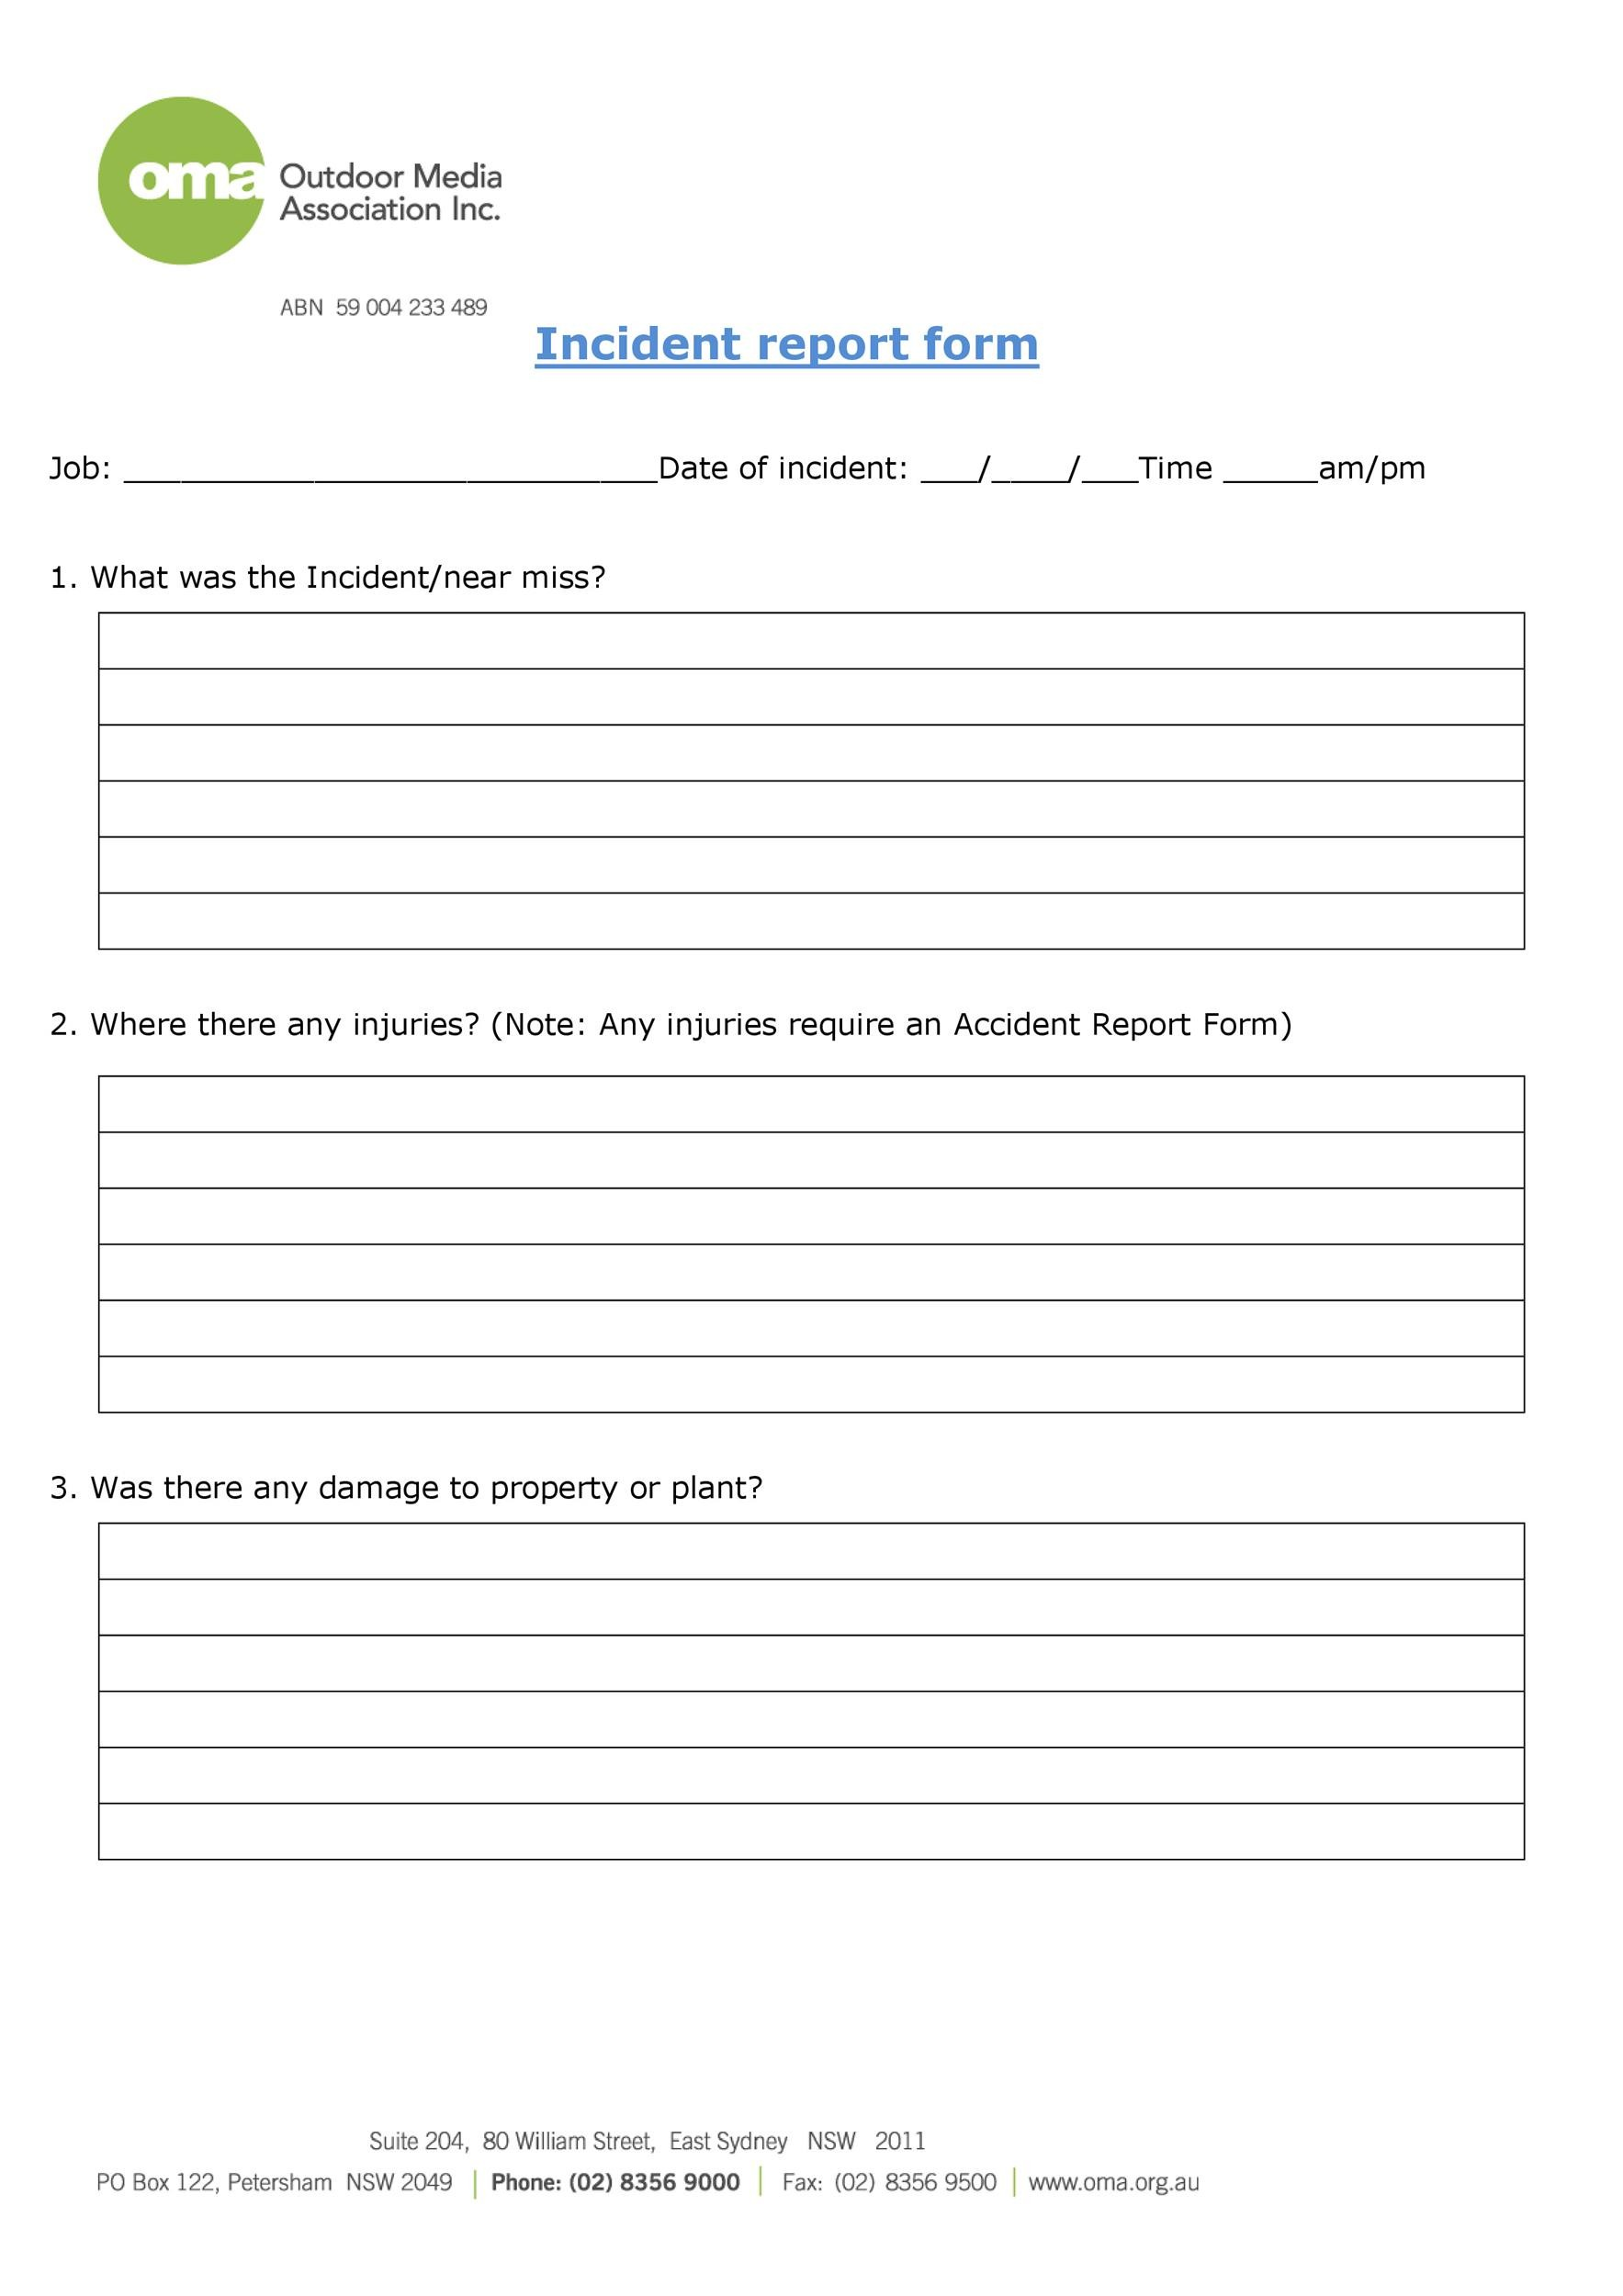 60+ Incident Report Template Employee, Police, Generic - Template Lab - accident reports template